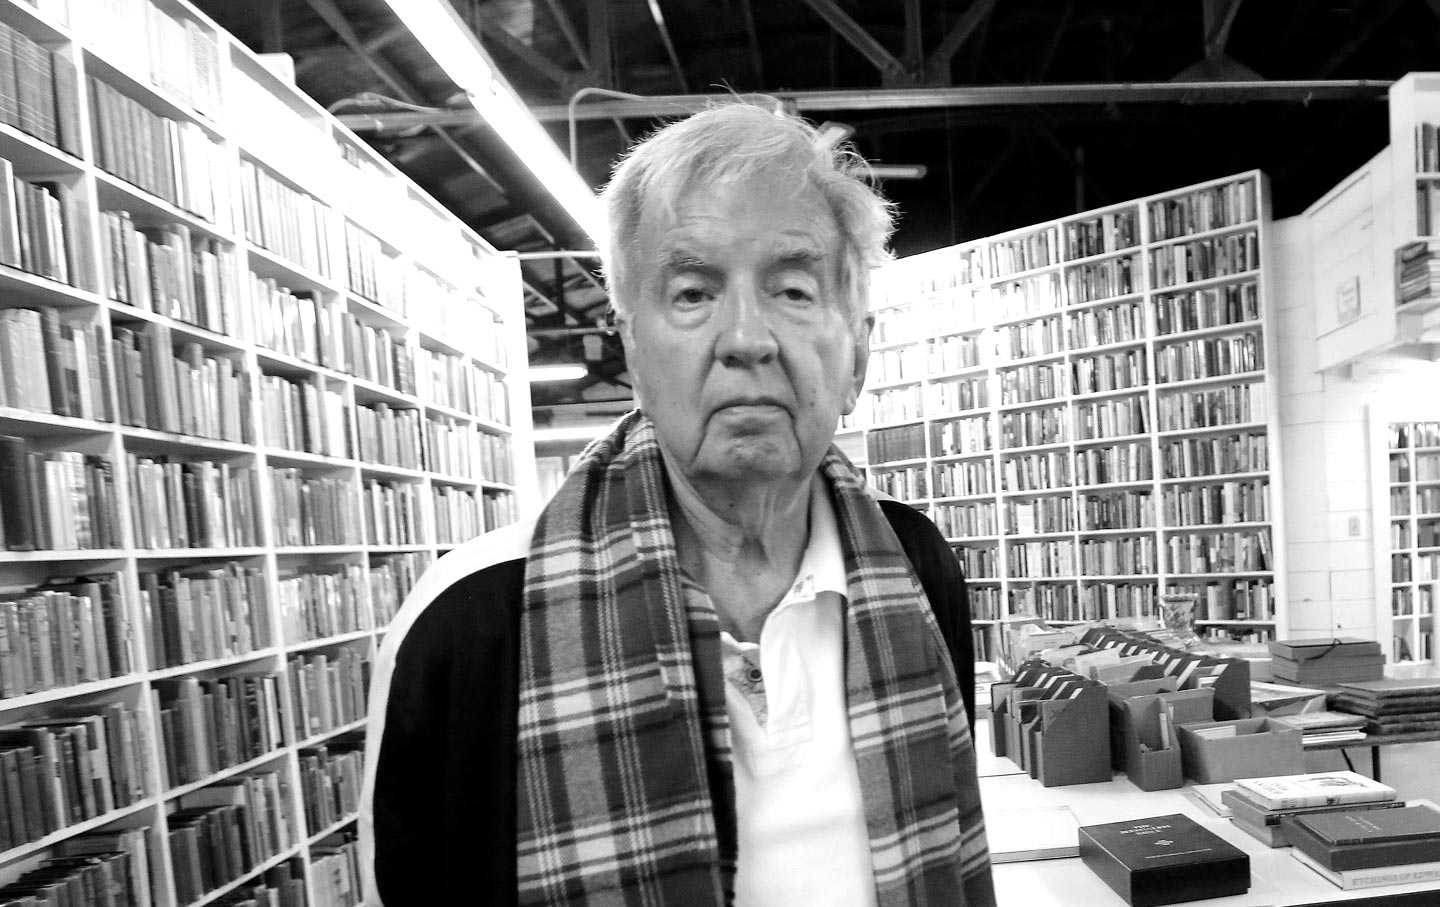 <strong>Larry McMurtry</strong> wrote 50 books. Not all were good. Some were masterpieces. For a great writer, the successes depend on the failures